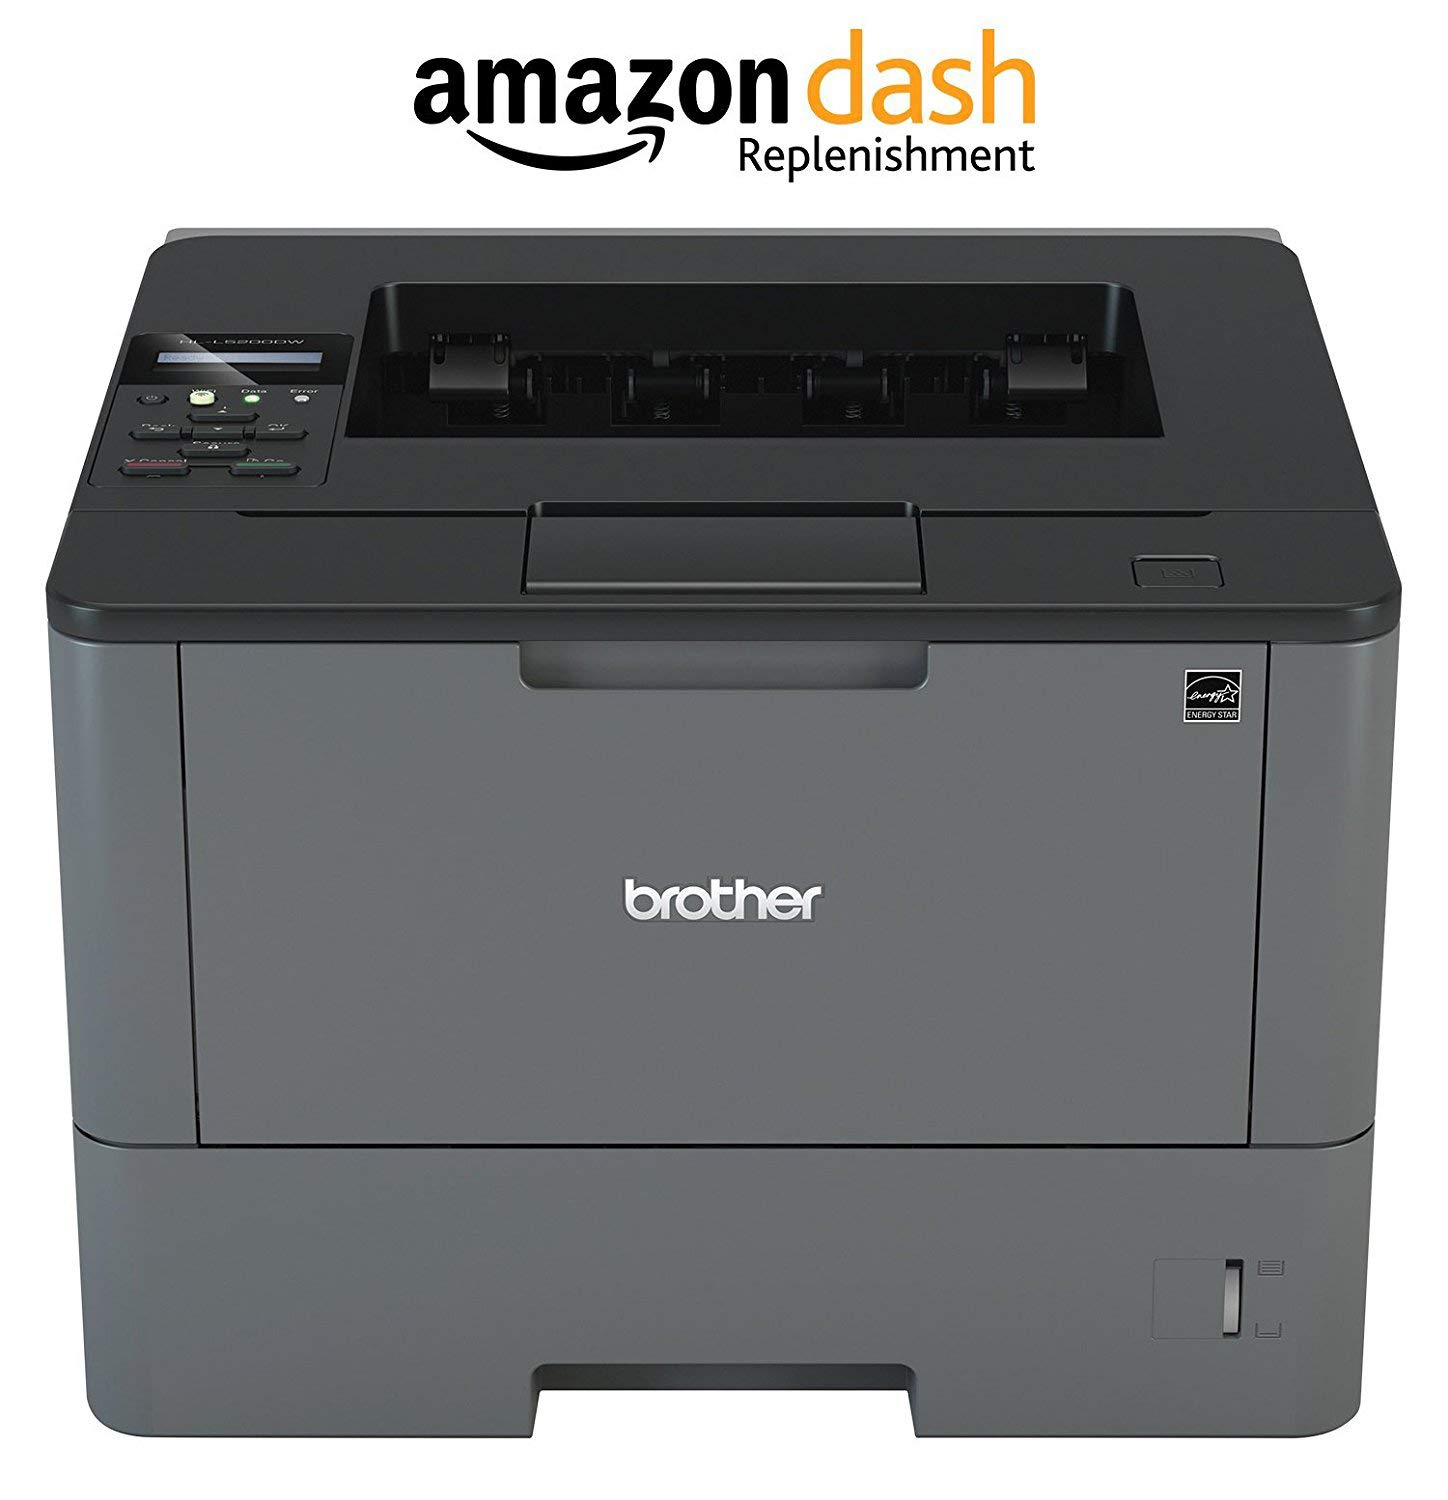 Brother Monochrome Laser Printer, HL-L6200DW, Wireless Networking, Mobile Printing, Duplex Printing, Large Paper Capacity, Amazon Dash Replenishment Enabled Brother Printer